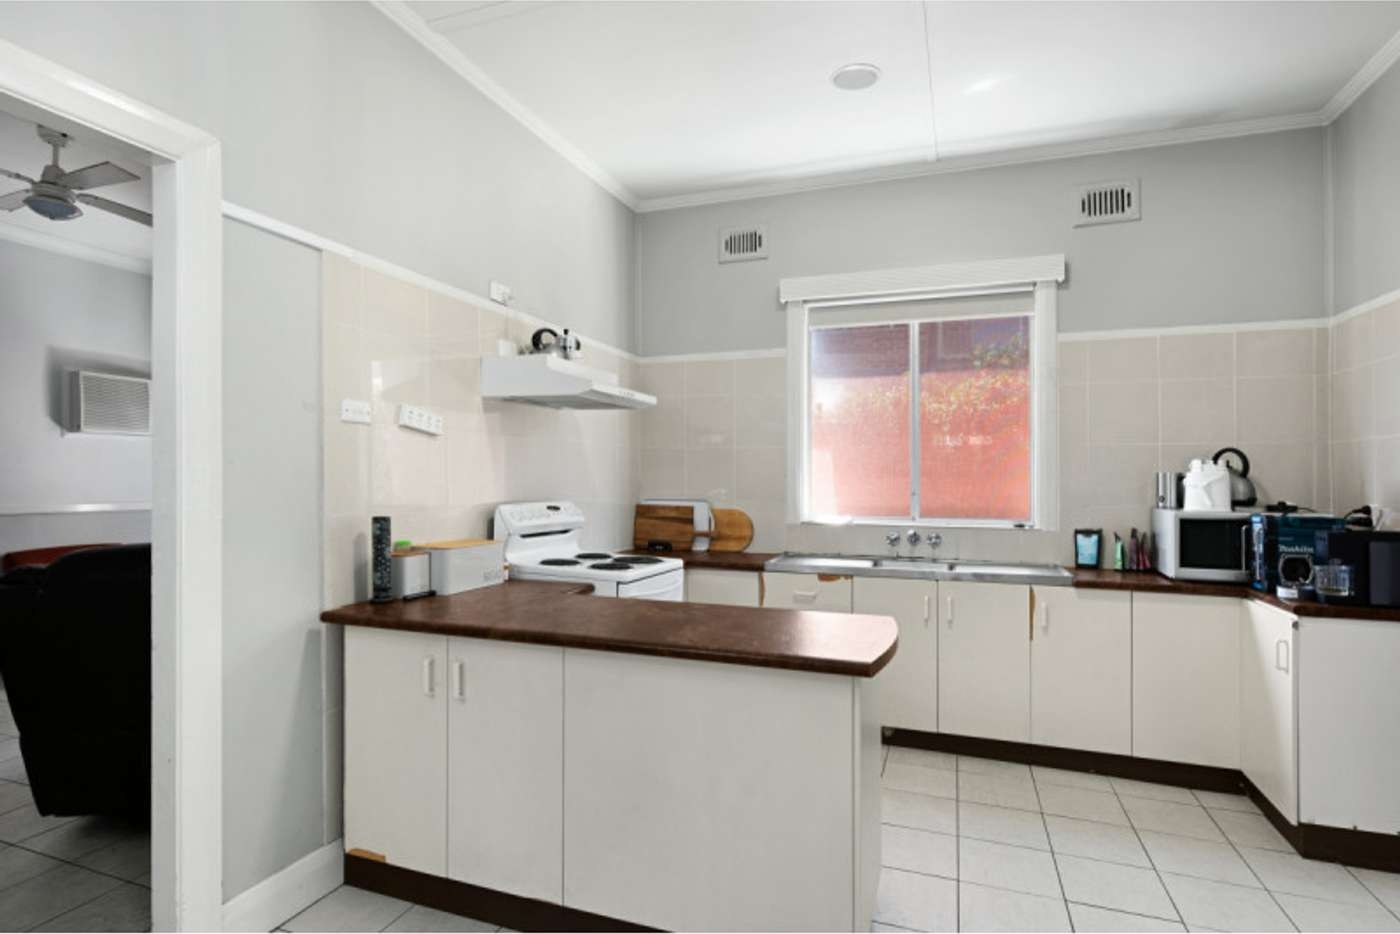 Sixth view of Homely house listing, 38 George Street, Belmont NSW 2280